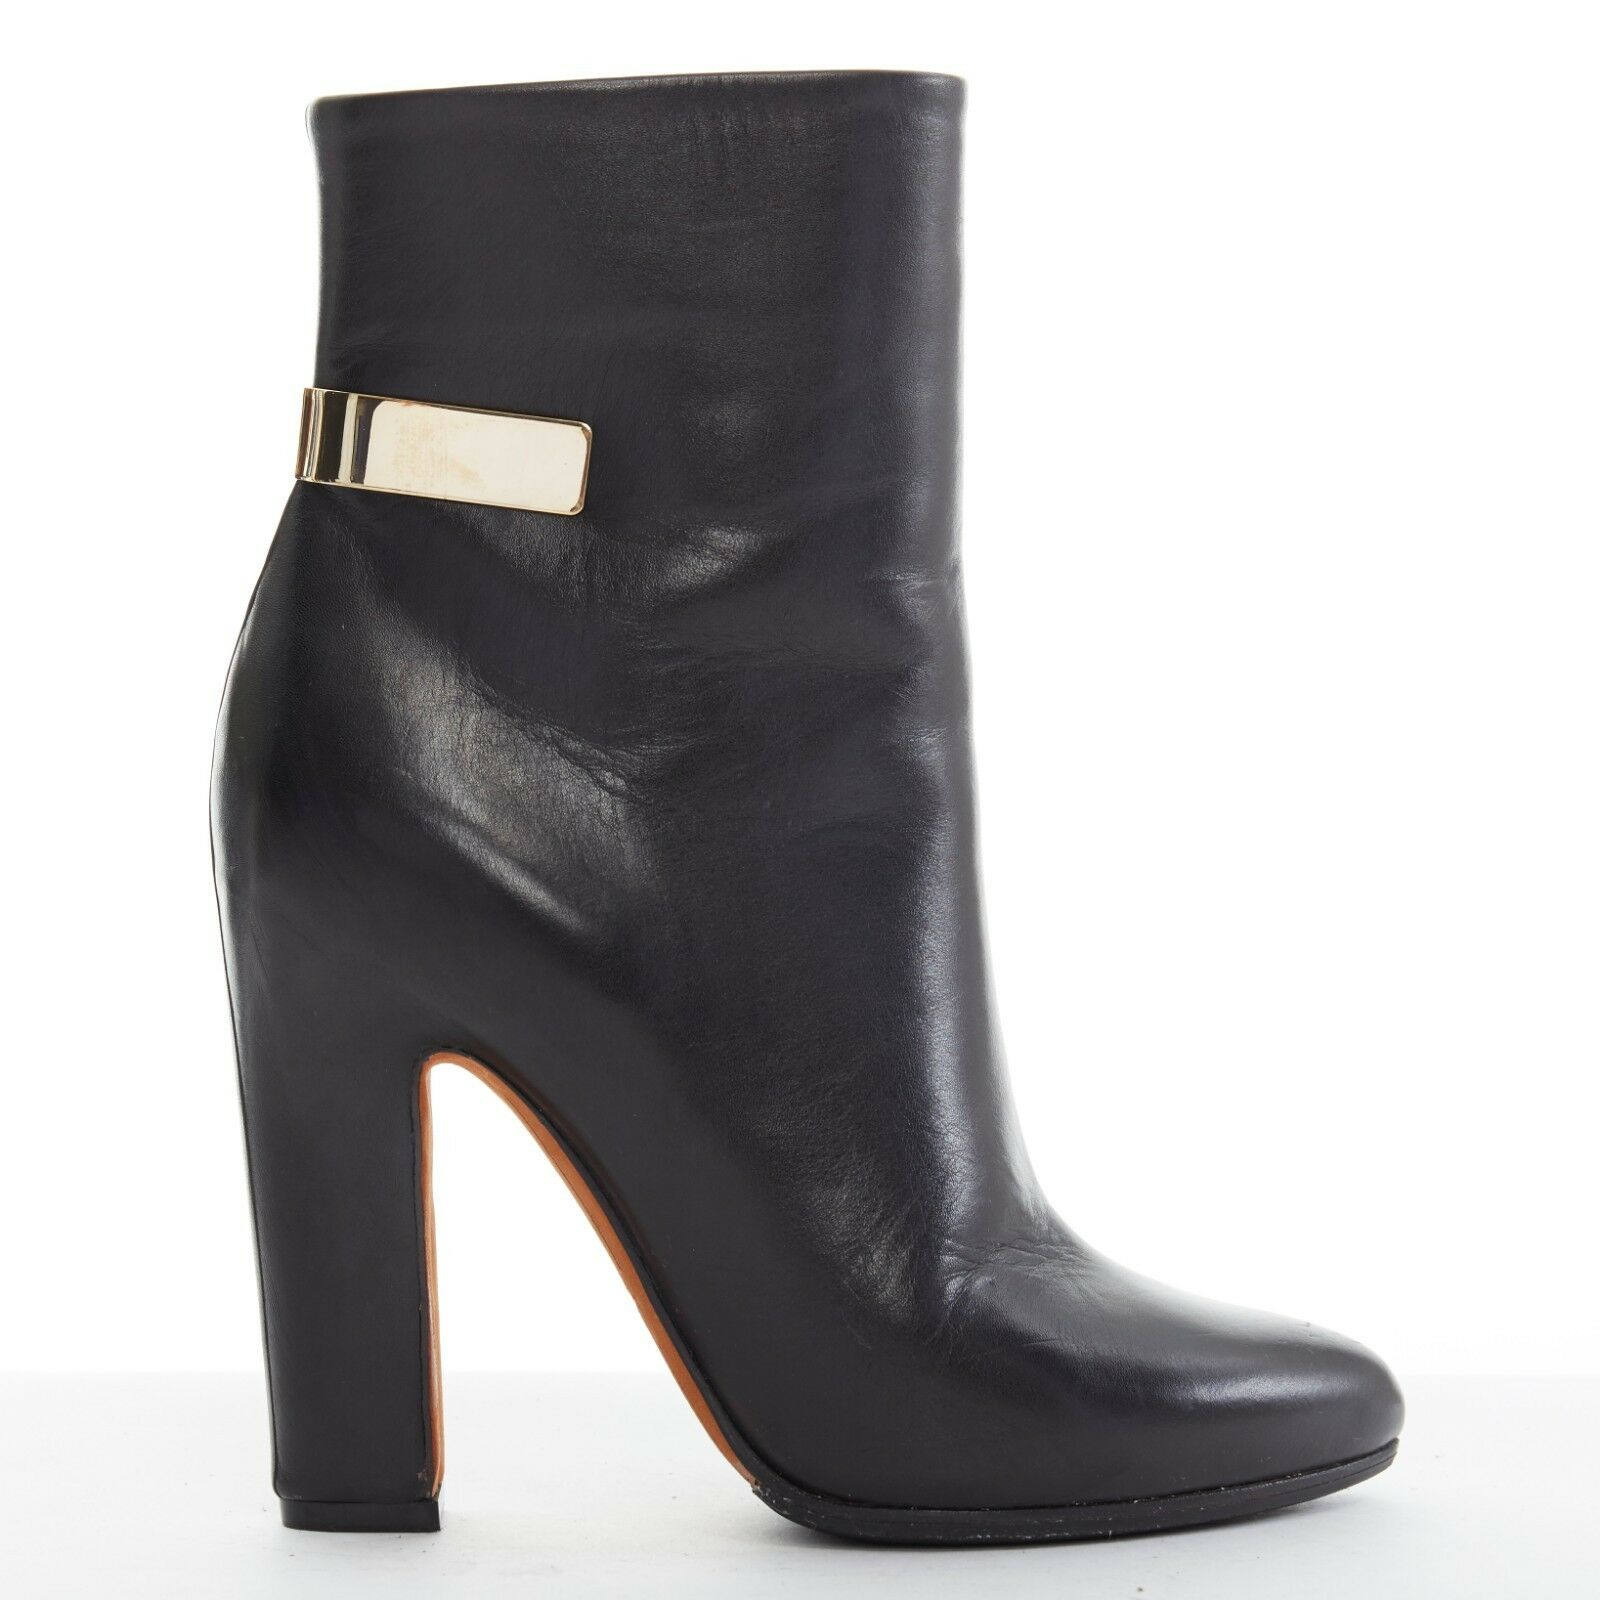 GIVENCHY black almond toe gold metal bar detail chunky heel heel heel ankle boot EU35.5 d65425